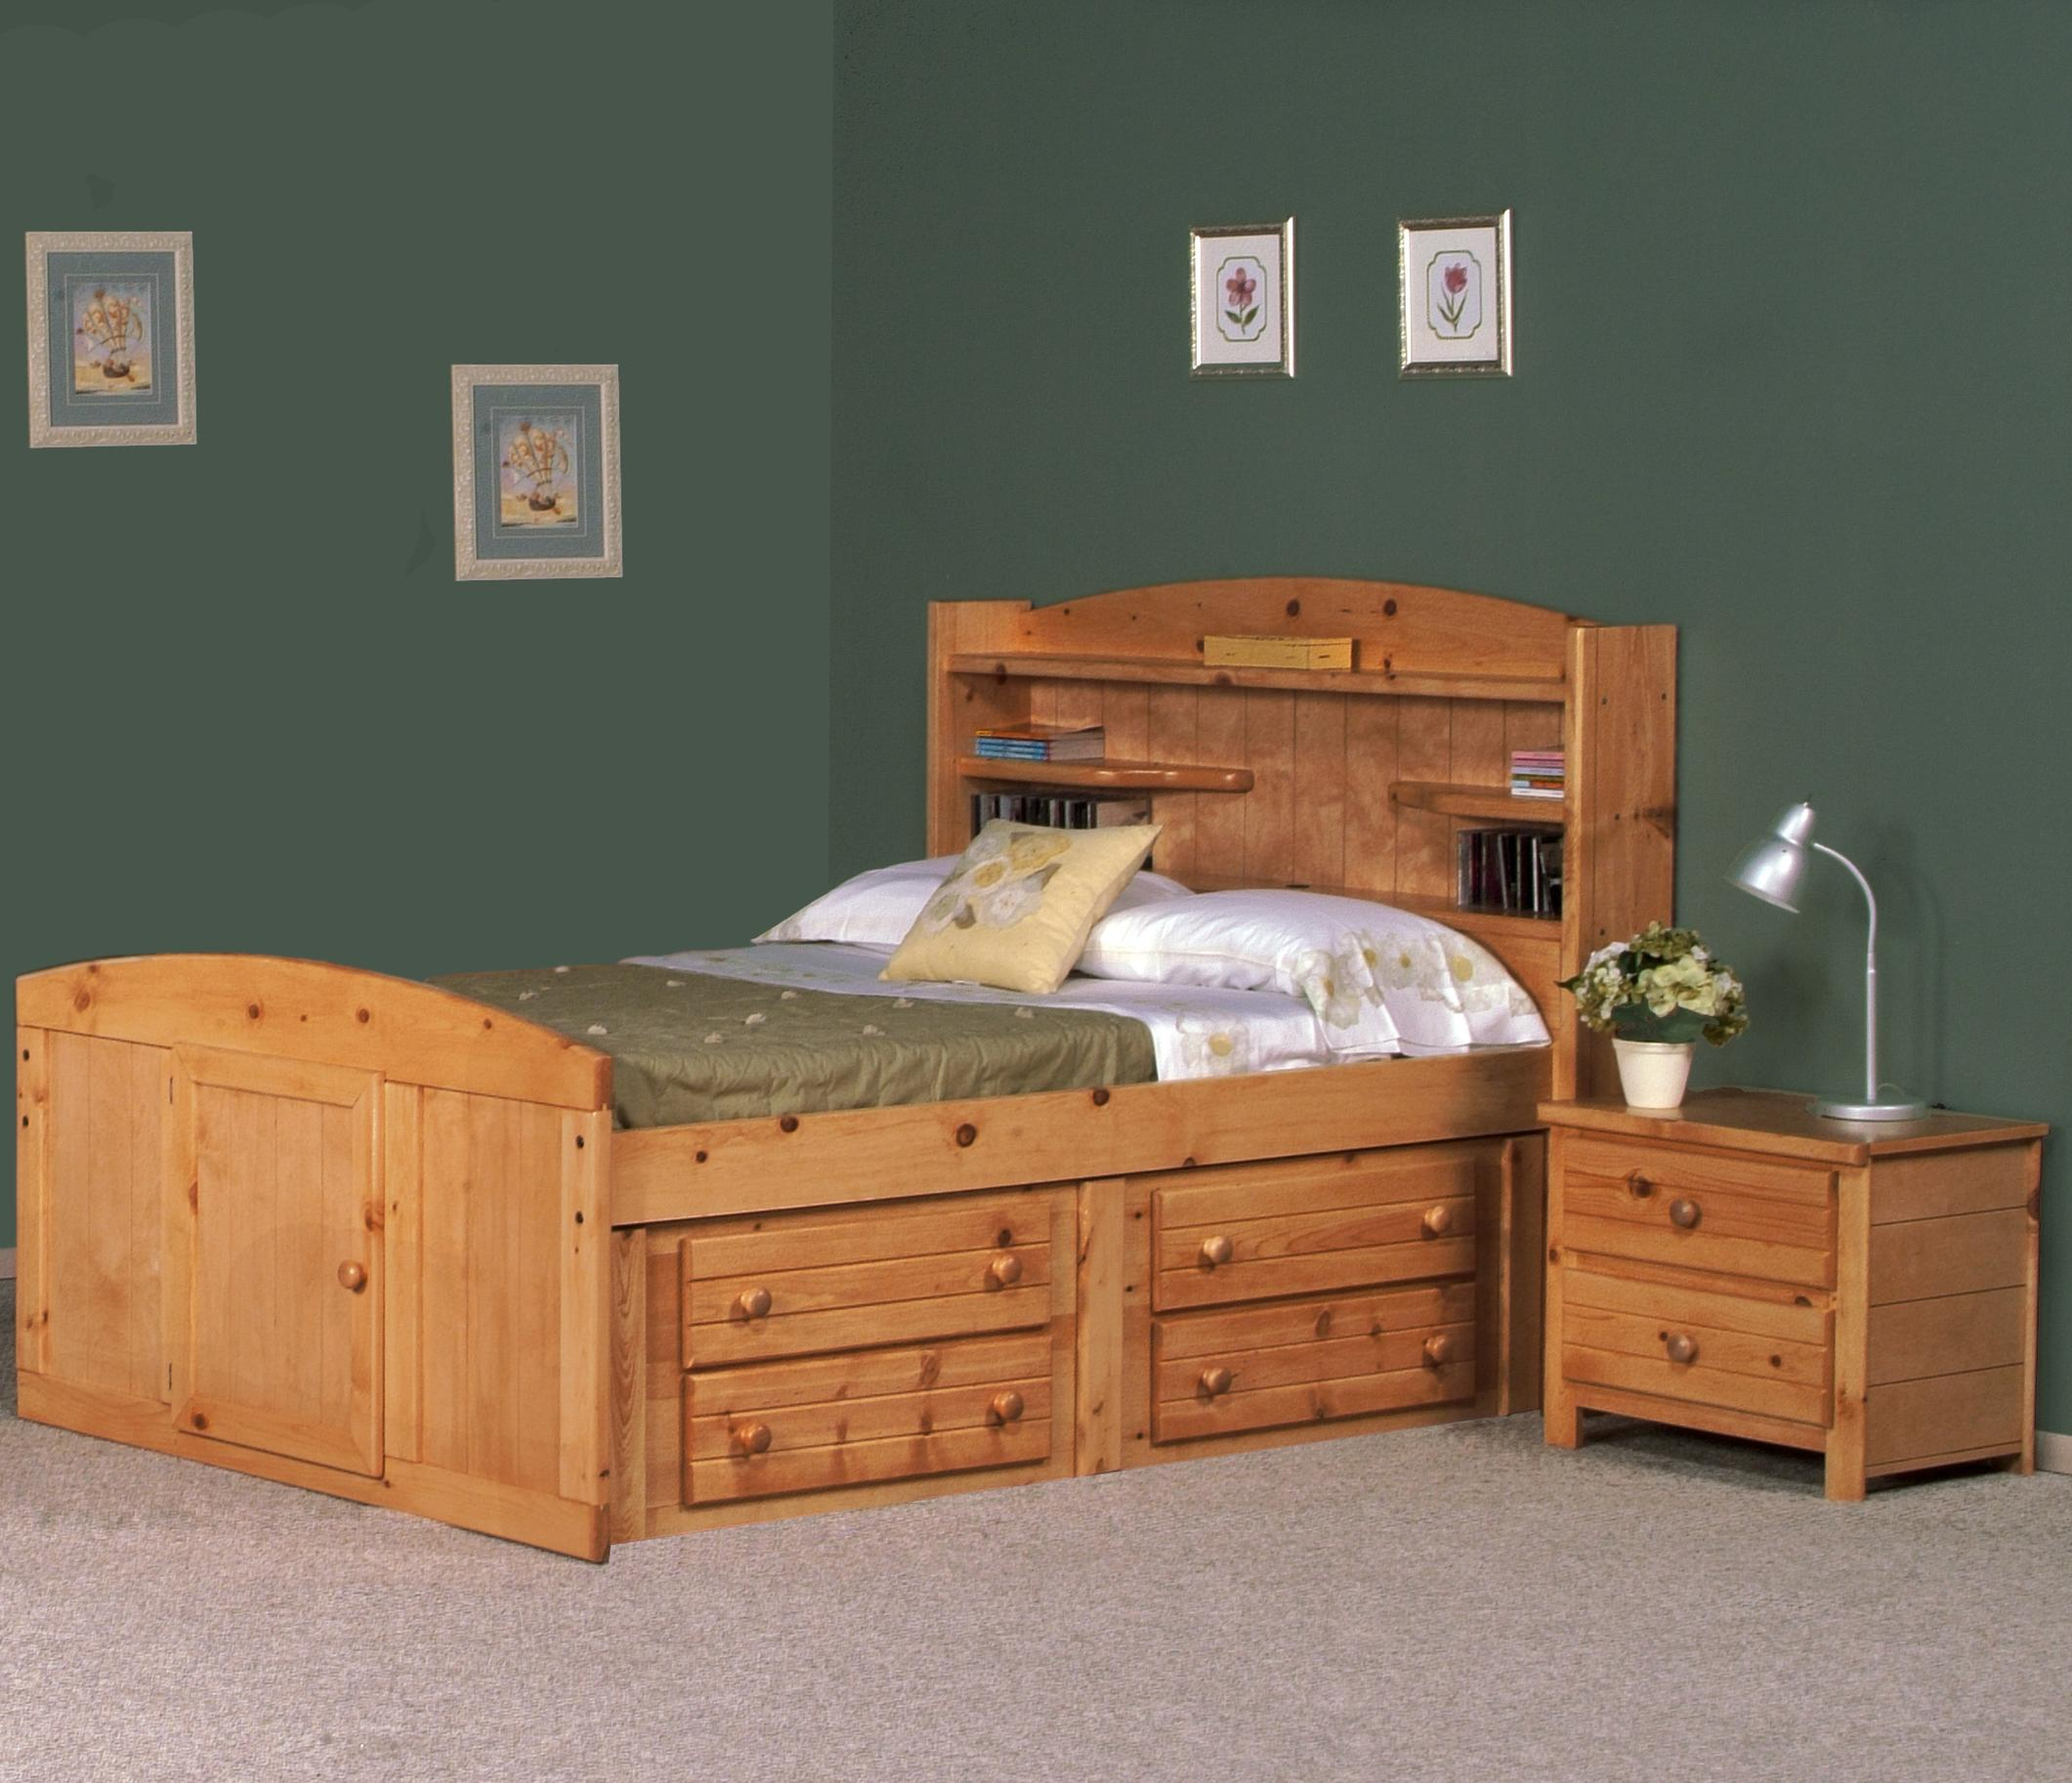 Twin size captains bed all images recommended for you 2 twin beds make a queen